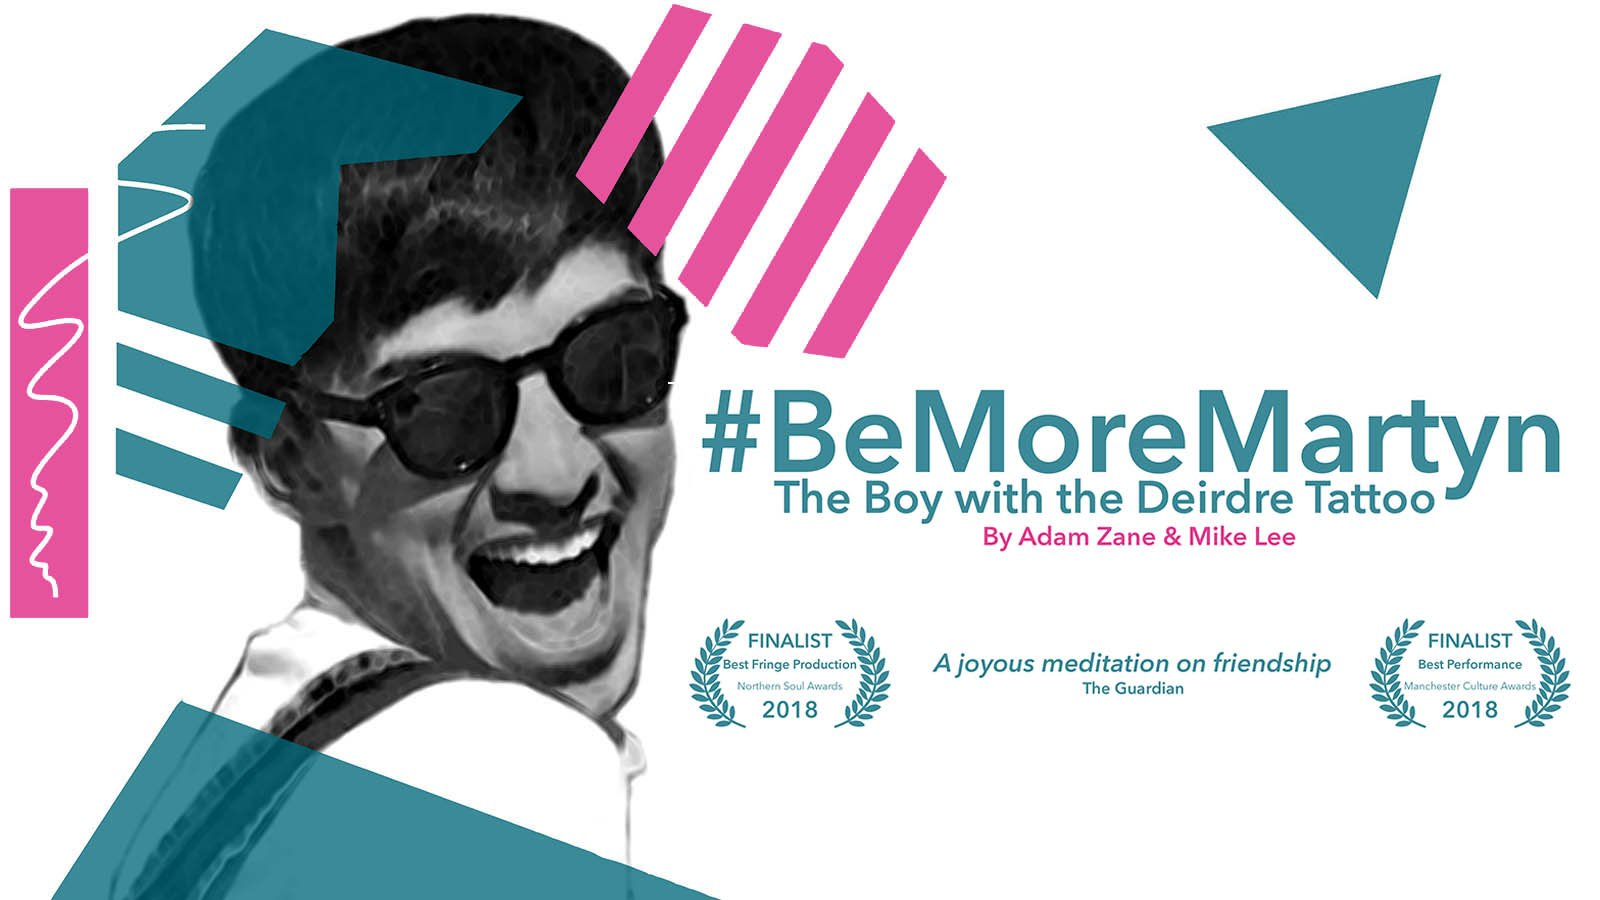 Joseph Carter And Chloe Proctor / #BeMoreMartyn: The Boy With The Deirdre Tattoo